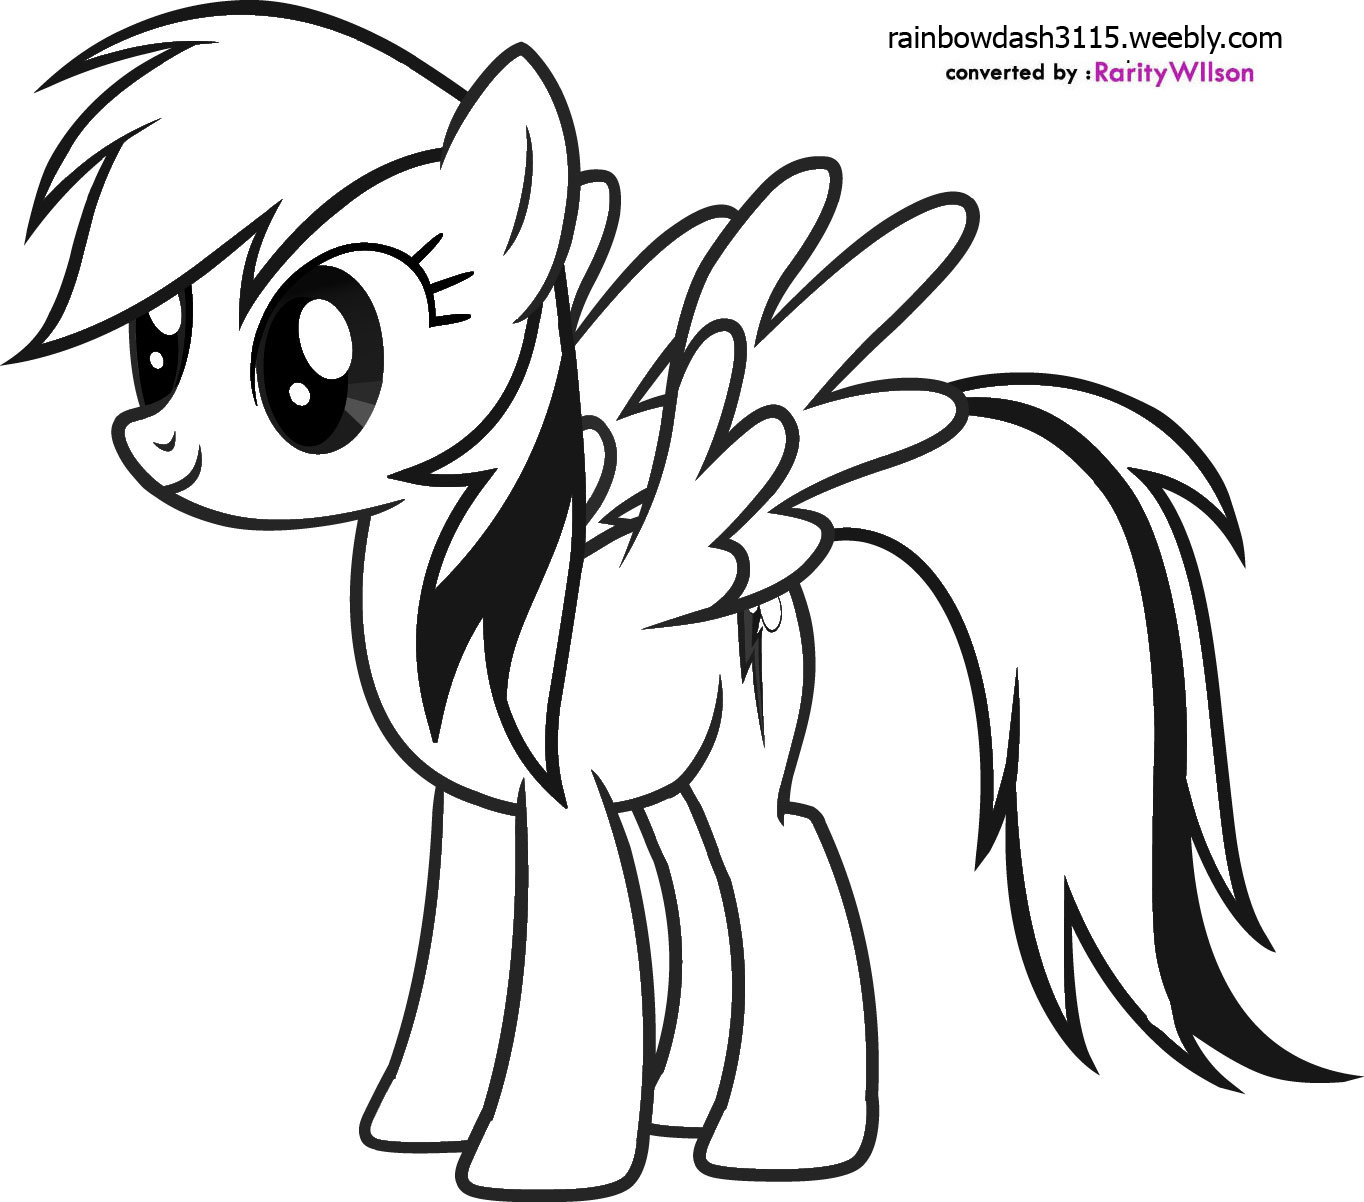 my little pony coloring pages rainbow dash rainbow dash coloring page clipart panda free clipart little dash pony my pages coloring rainbow